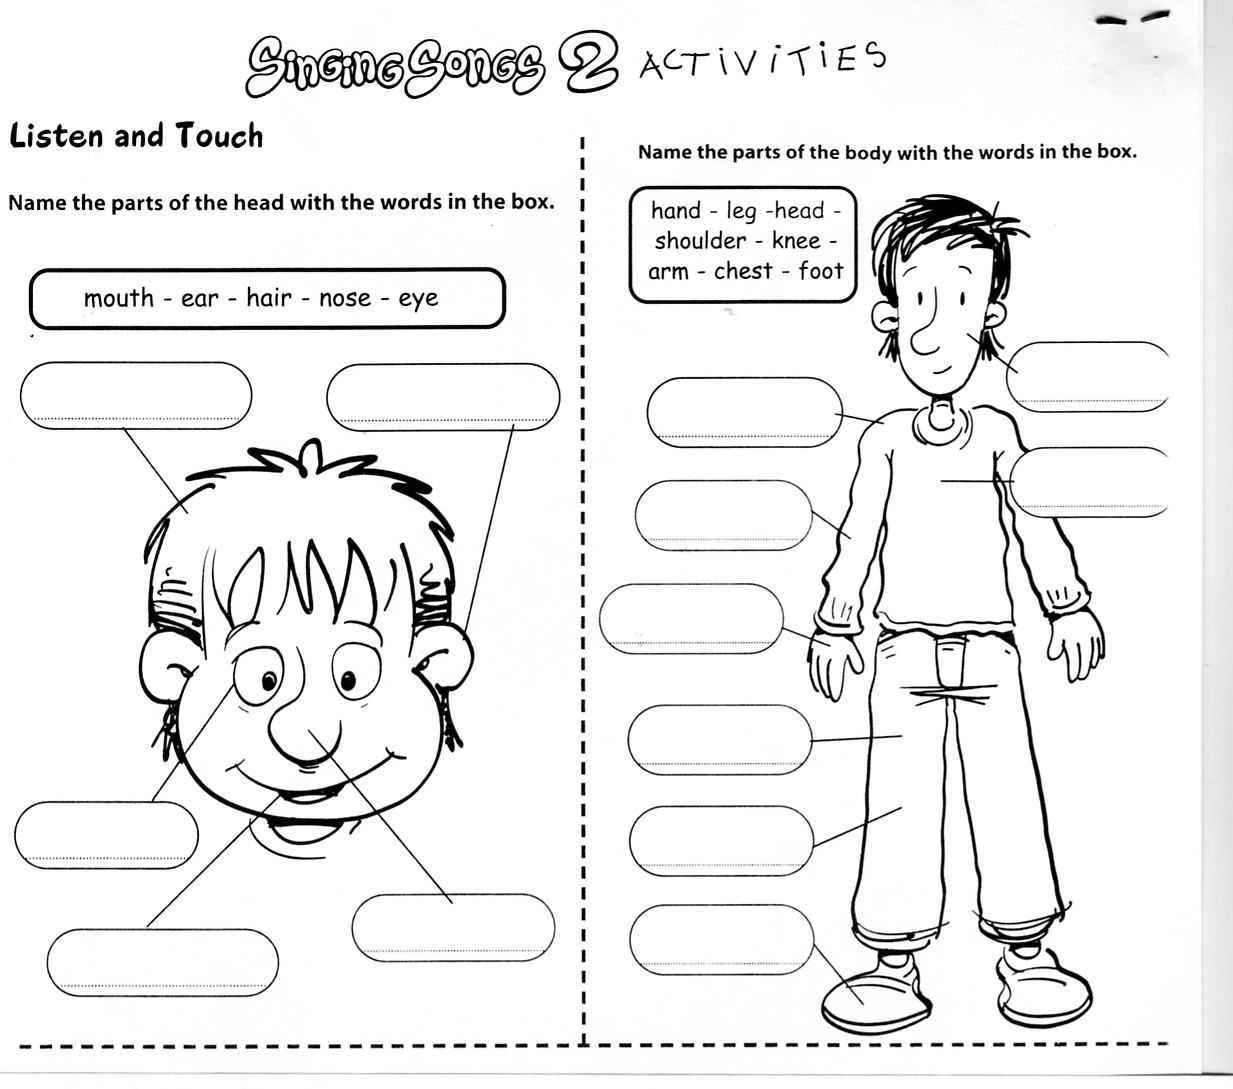 worksheet Esol Worksheets this esol worksheet is intended to familiarize the children with parts of their body